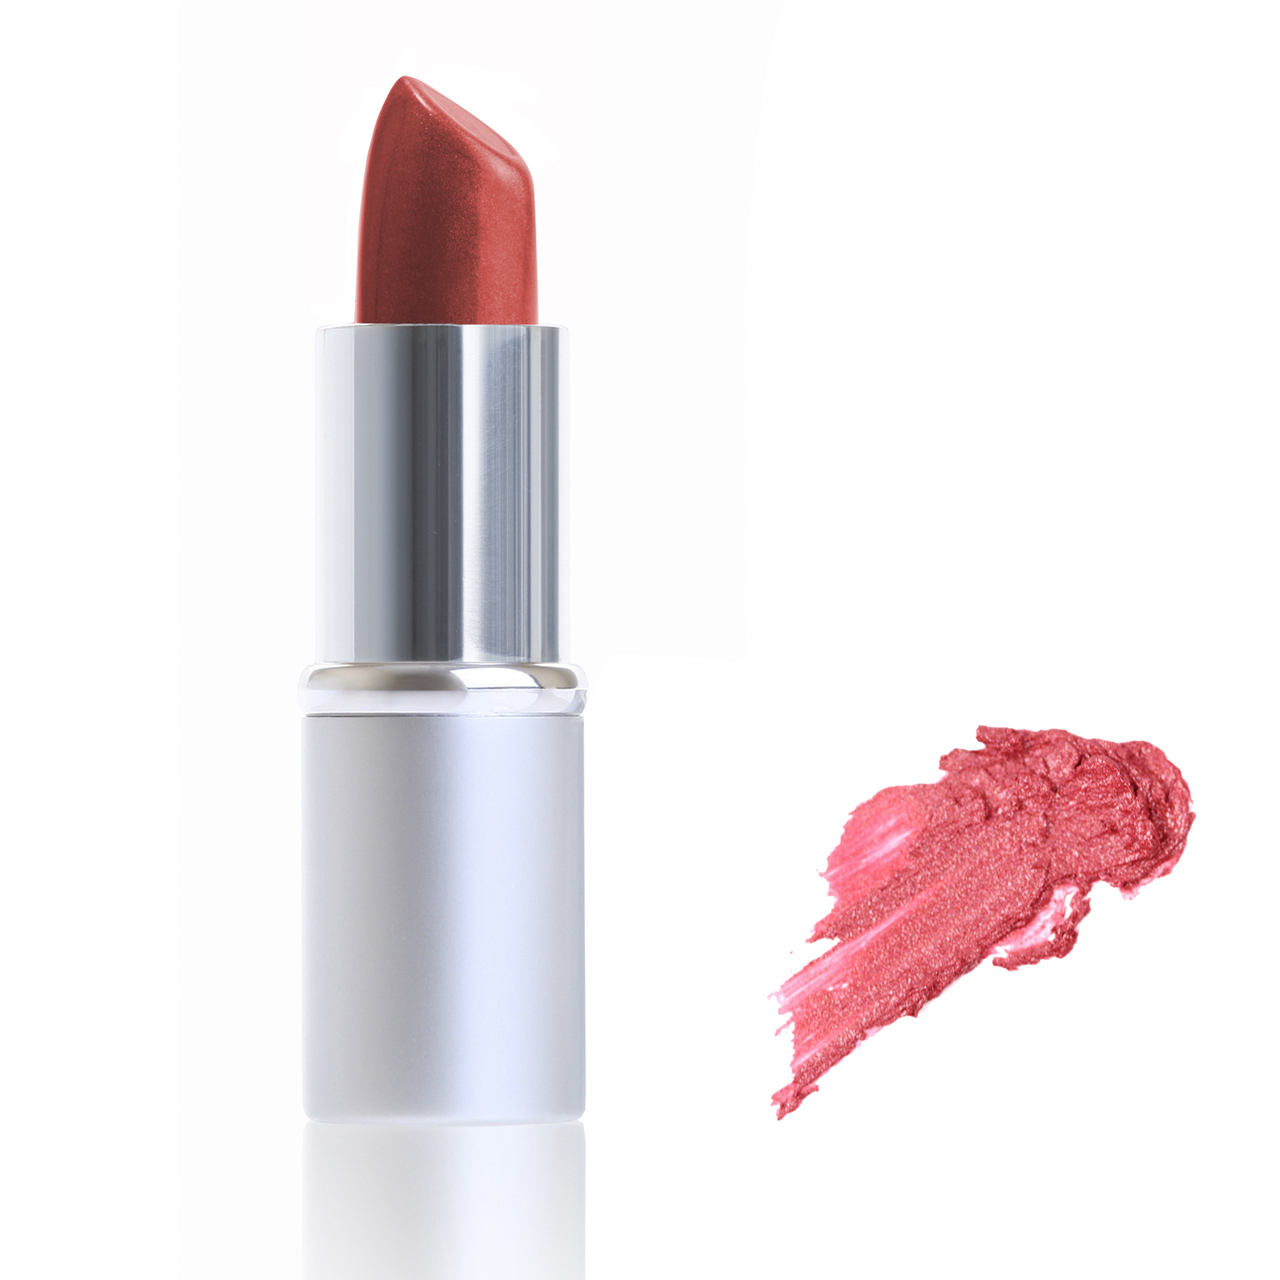 Pur Minerals Mineral Shea Butter Lipstick - Red Ruby